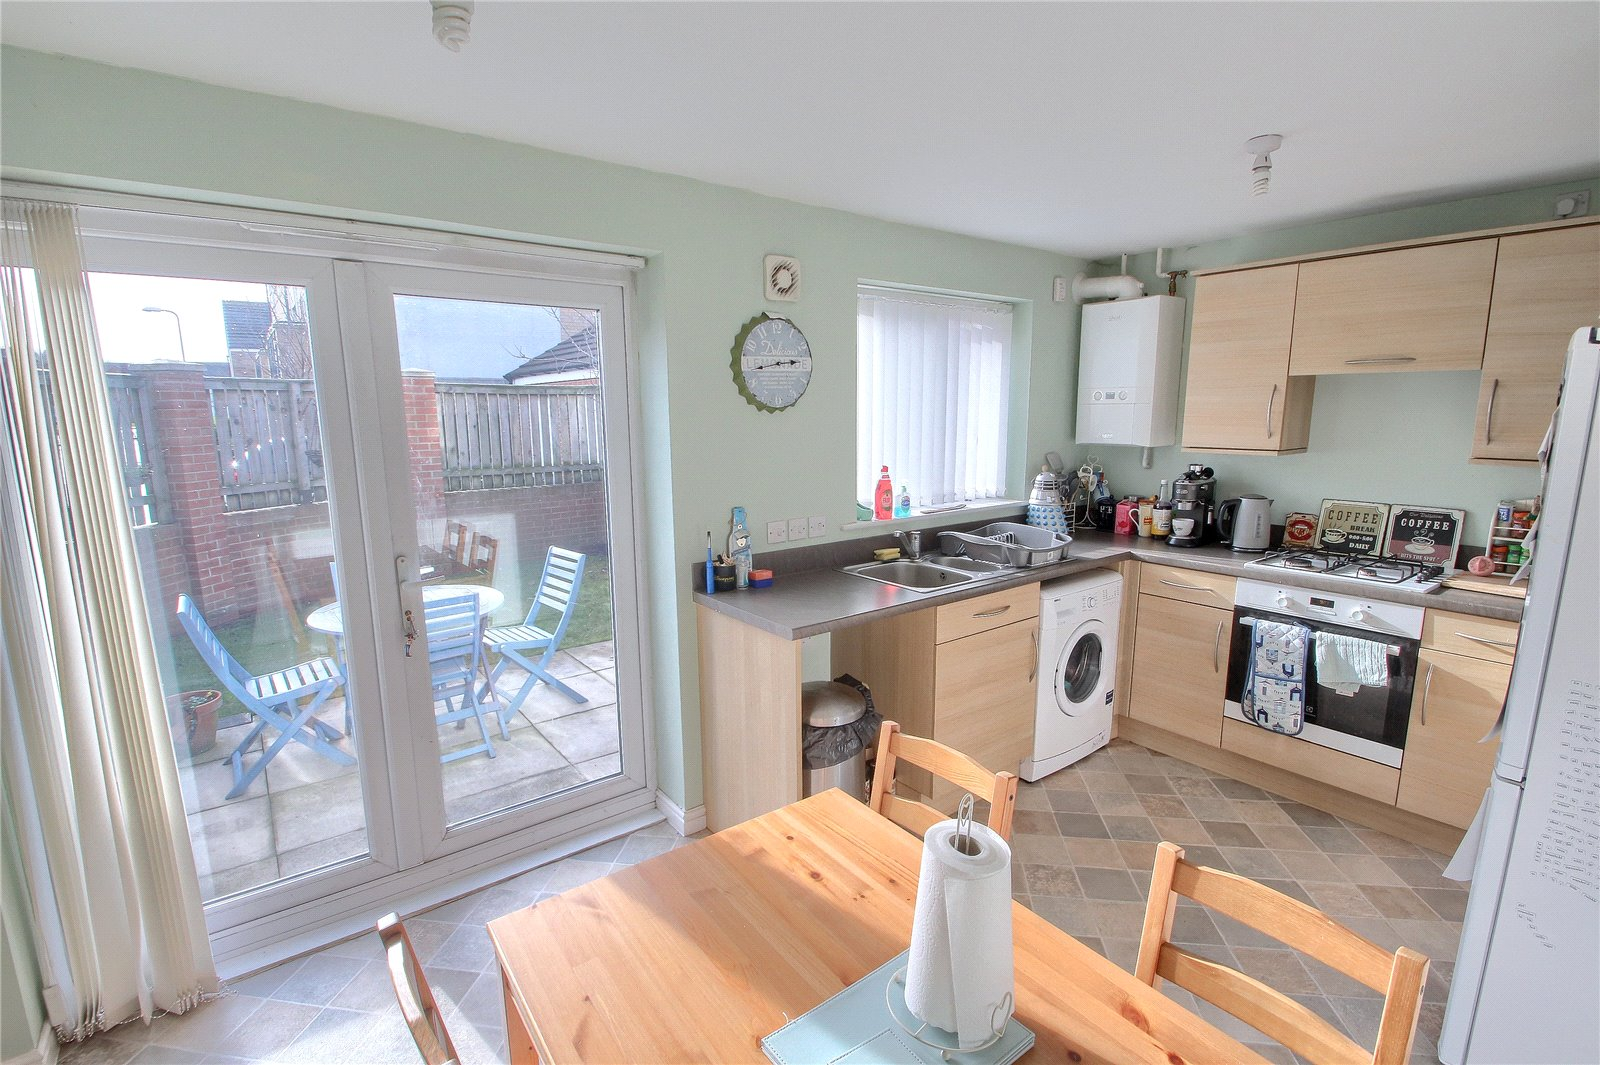 4 bed house for sale in Crimdon Beck Close, Whitewater Glade  - Property Image 3